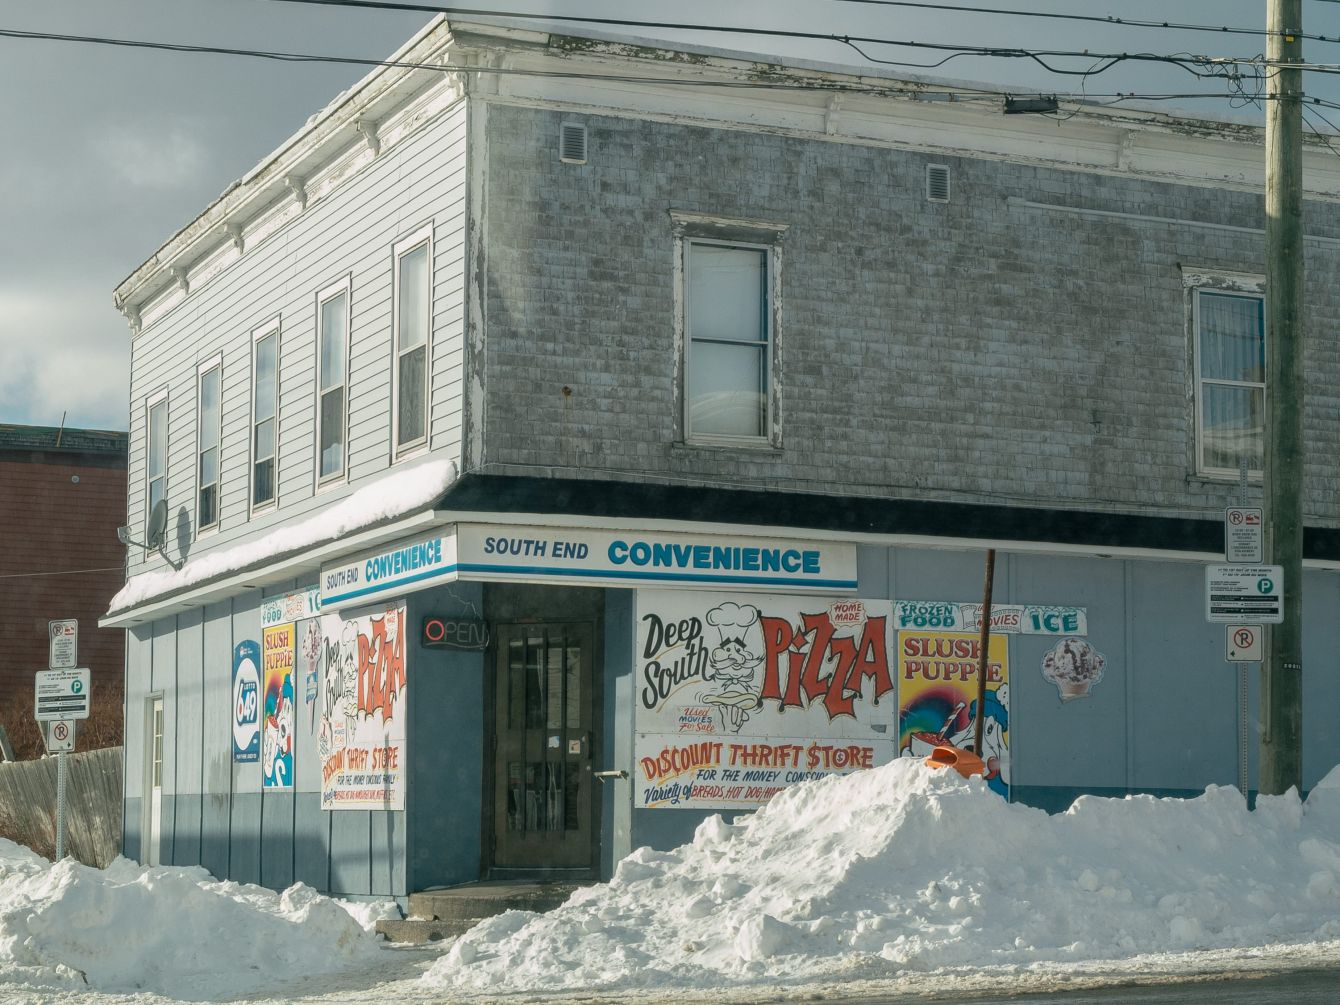 Click thumbnail to see details about photo - South End Convenience in Winter Saint John Photograph